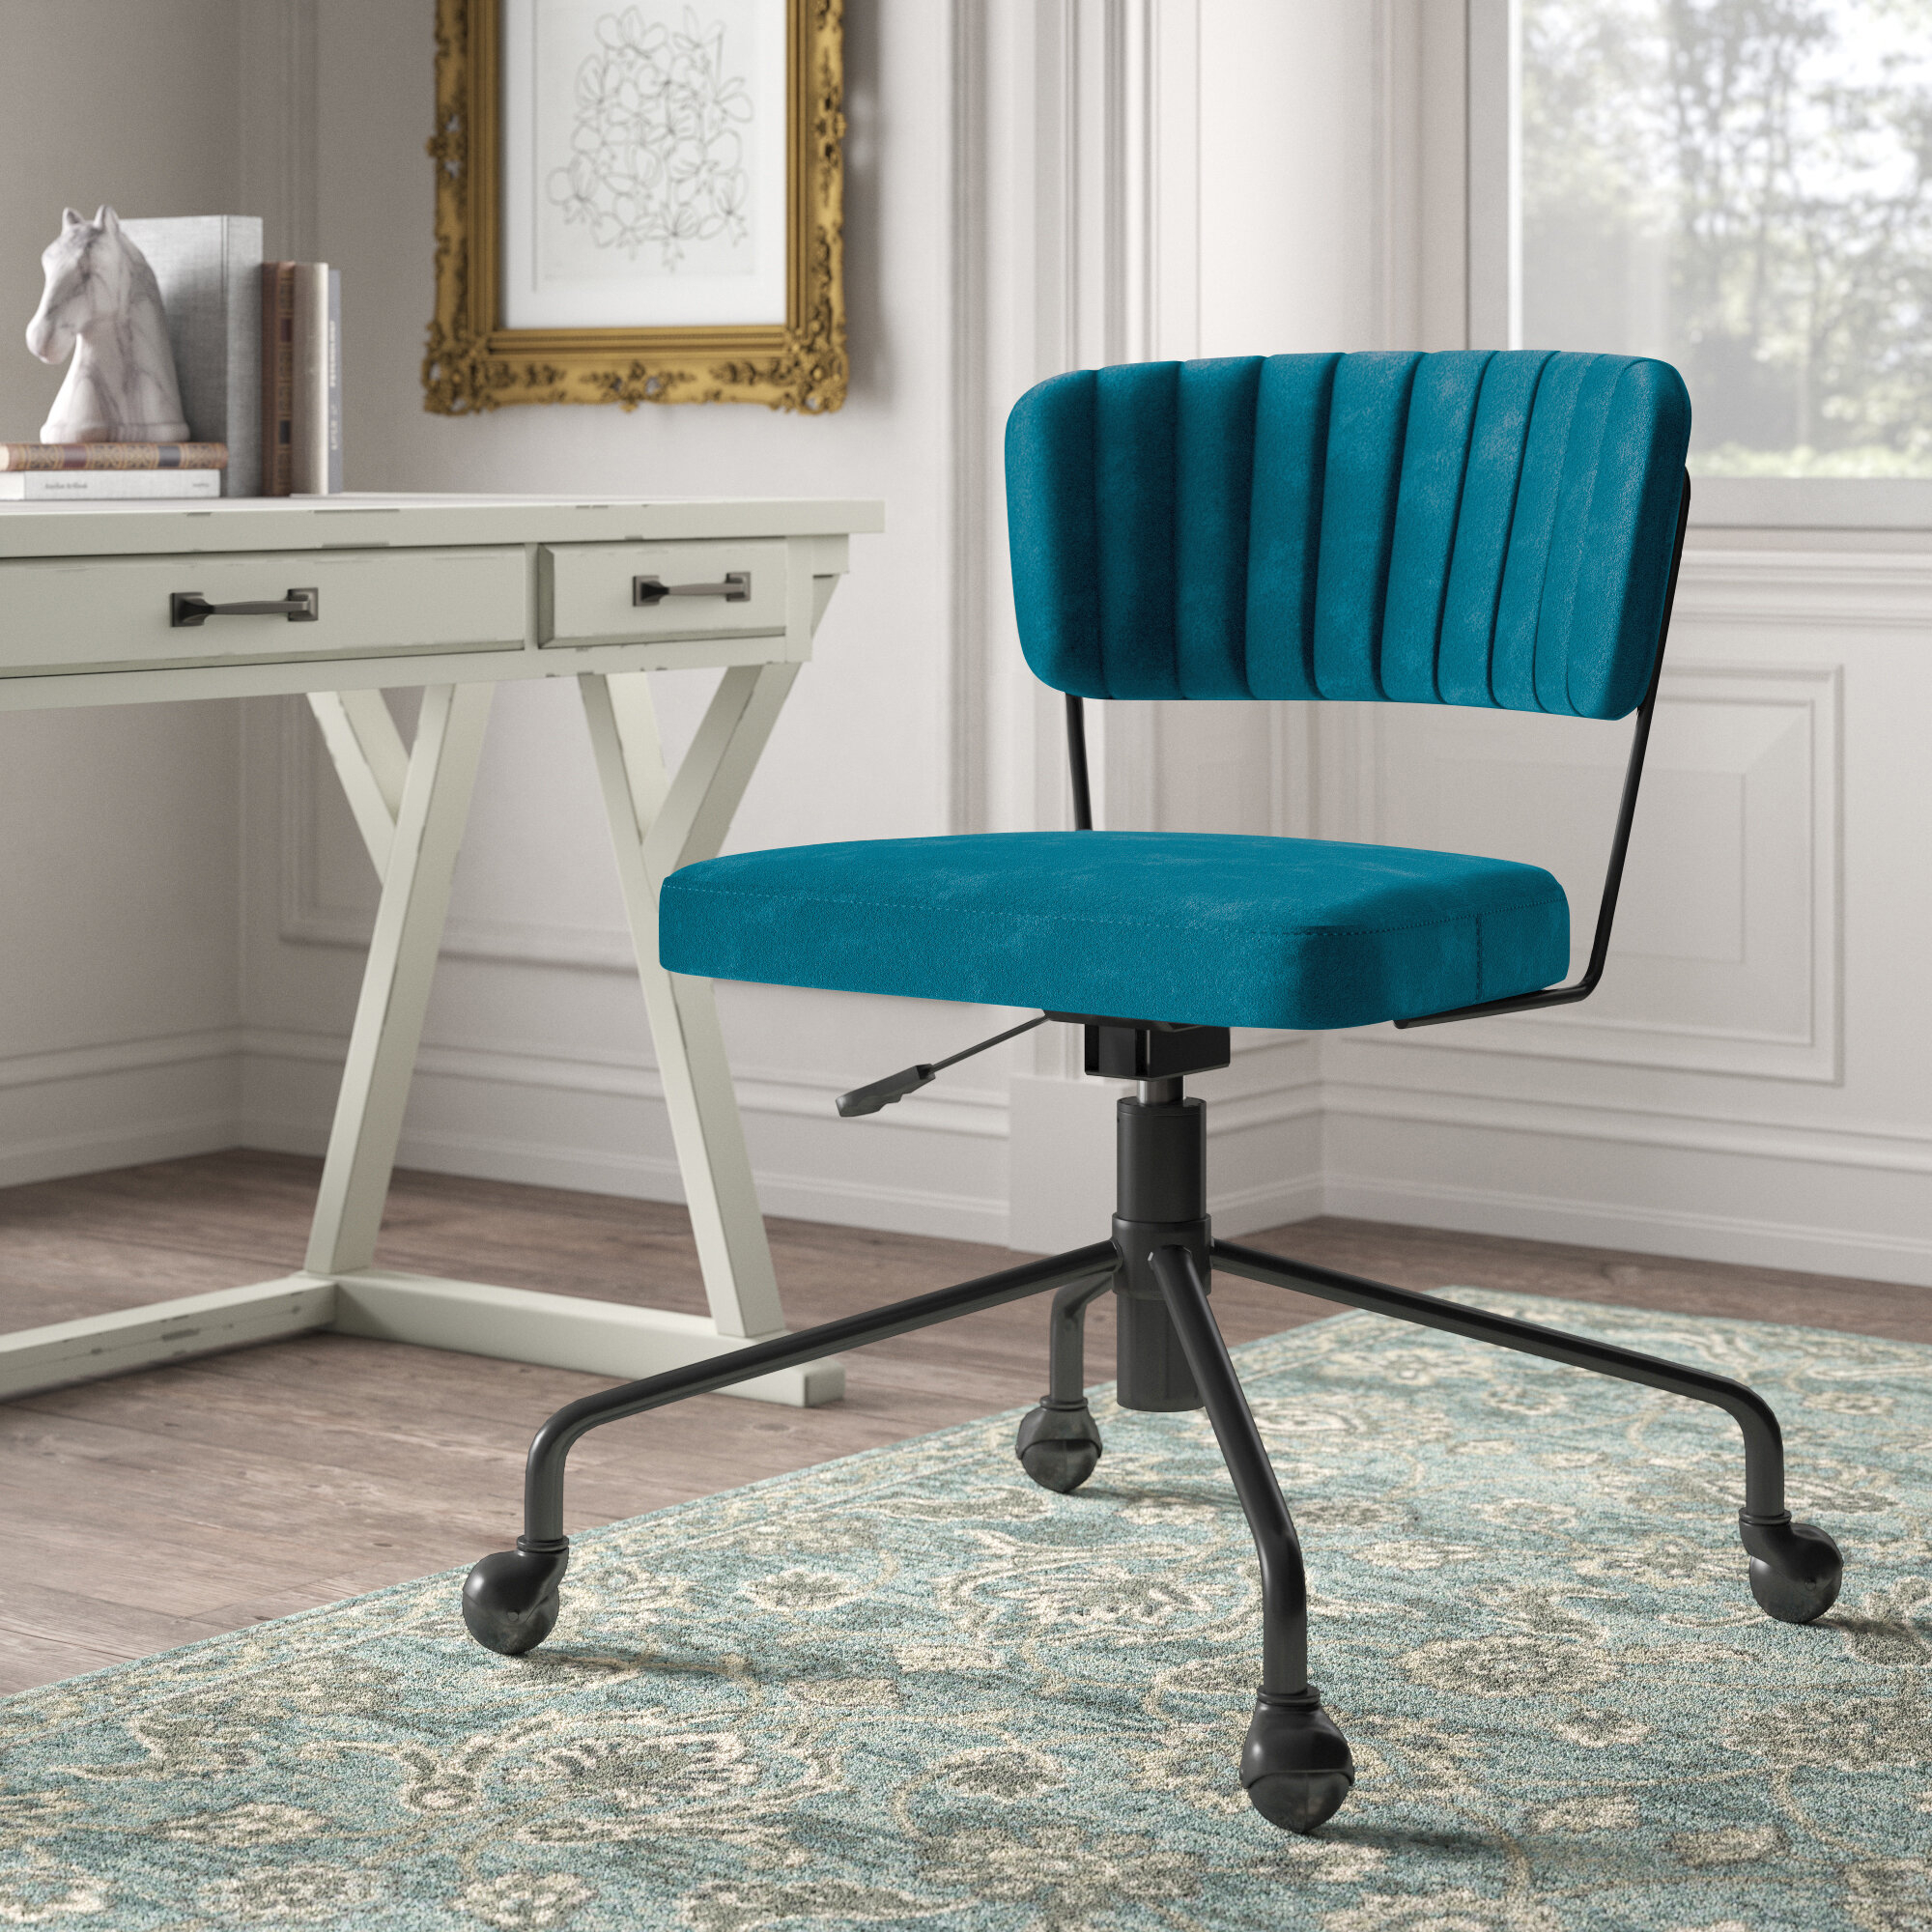 Kelly Clarkson Home Fabric Office Chairs You'Ll Love In 2021 In Hutchinsen Polyester Blend Armchairs (View 15 of 15)